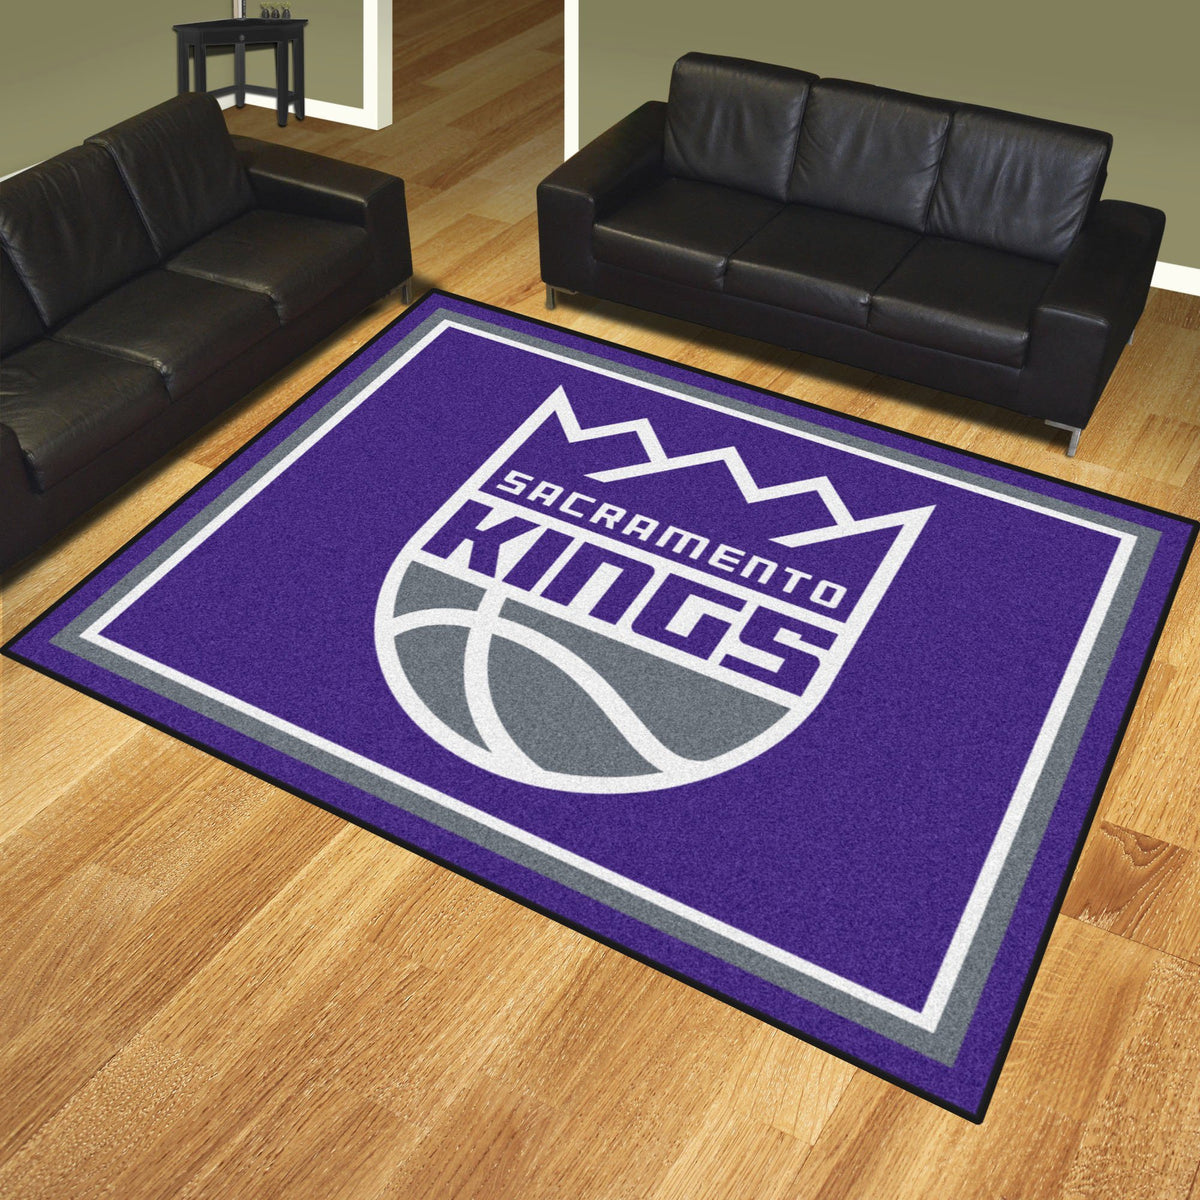 NBA - 8' x 10' Rug NBA Mats, Plush Rugs, 8x10 Rug, NBA, Home Fan Mats Sacramento Kings